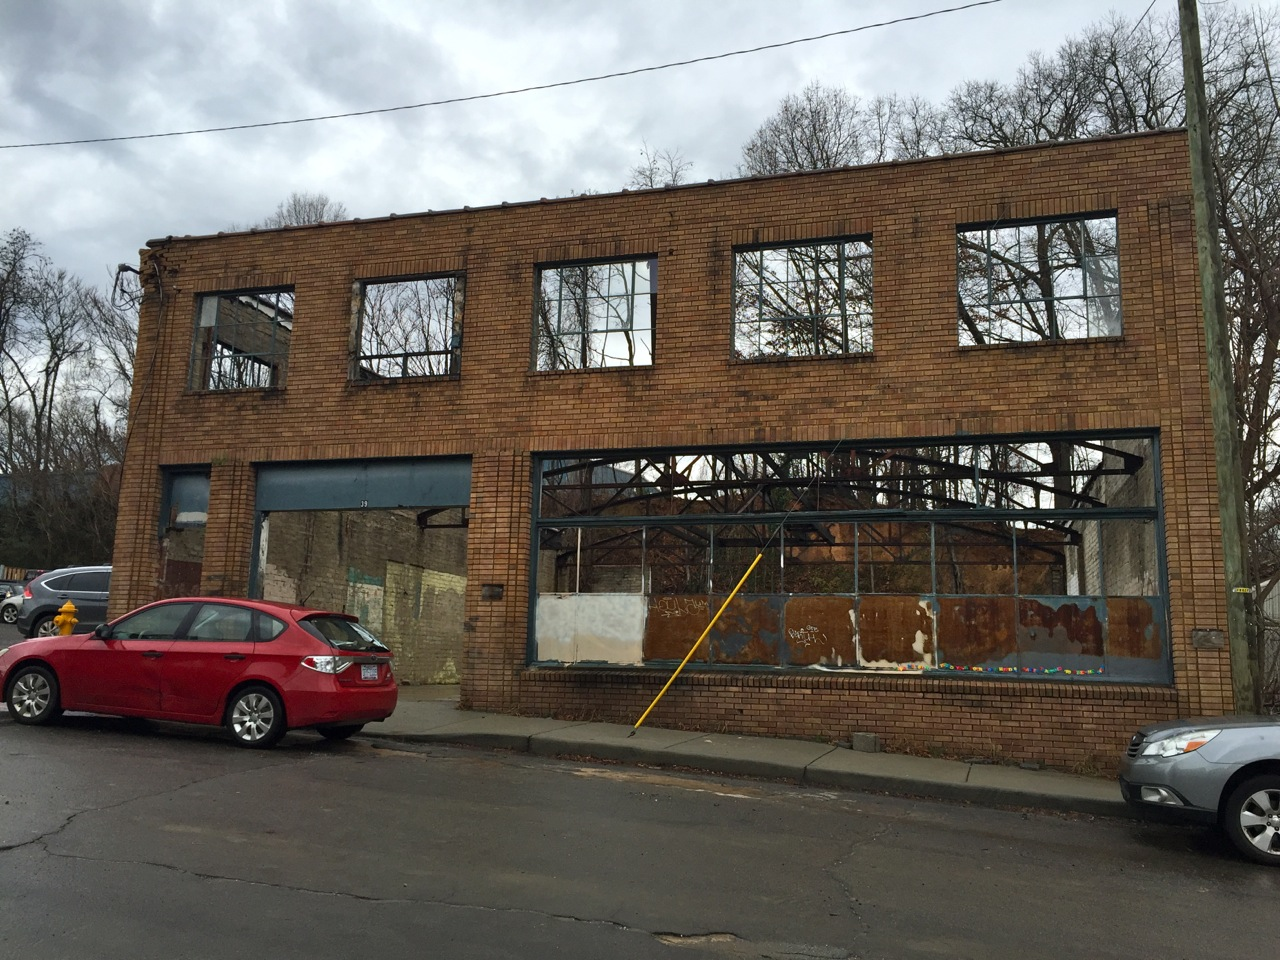 Sold! Building shell on Banks Avenue in Asheville for $600,000